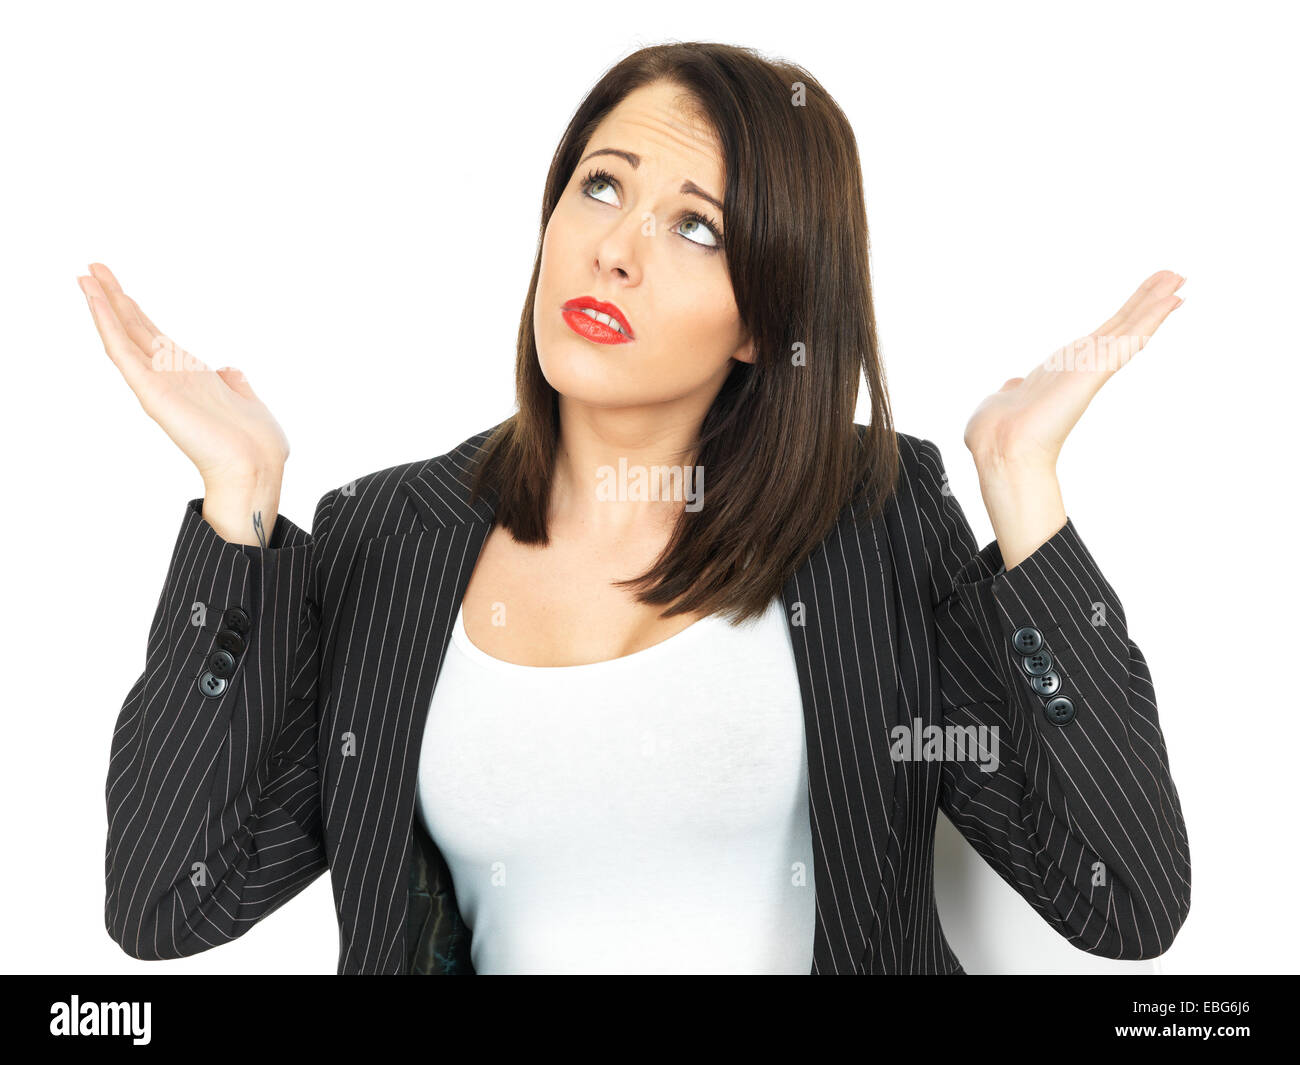 Angry Upset Young Business Woman - Stock Image